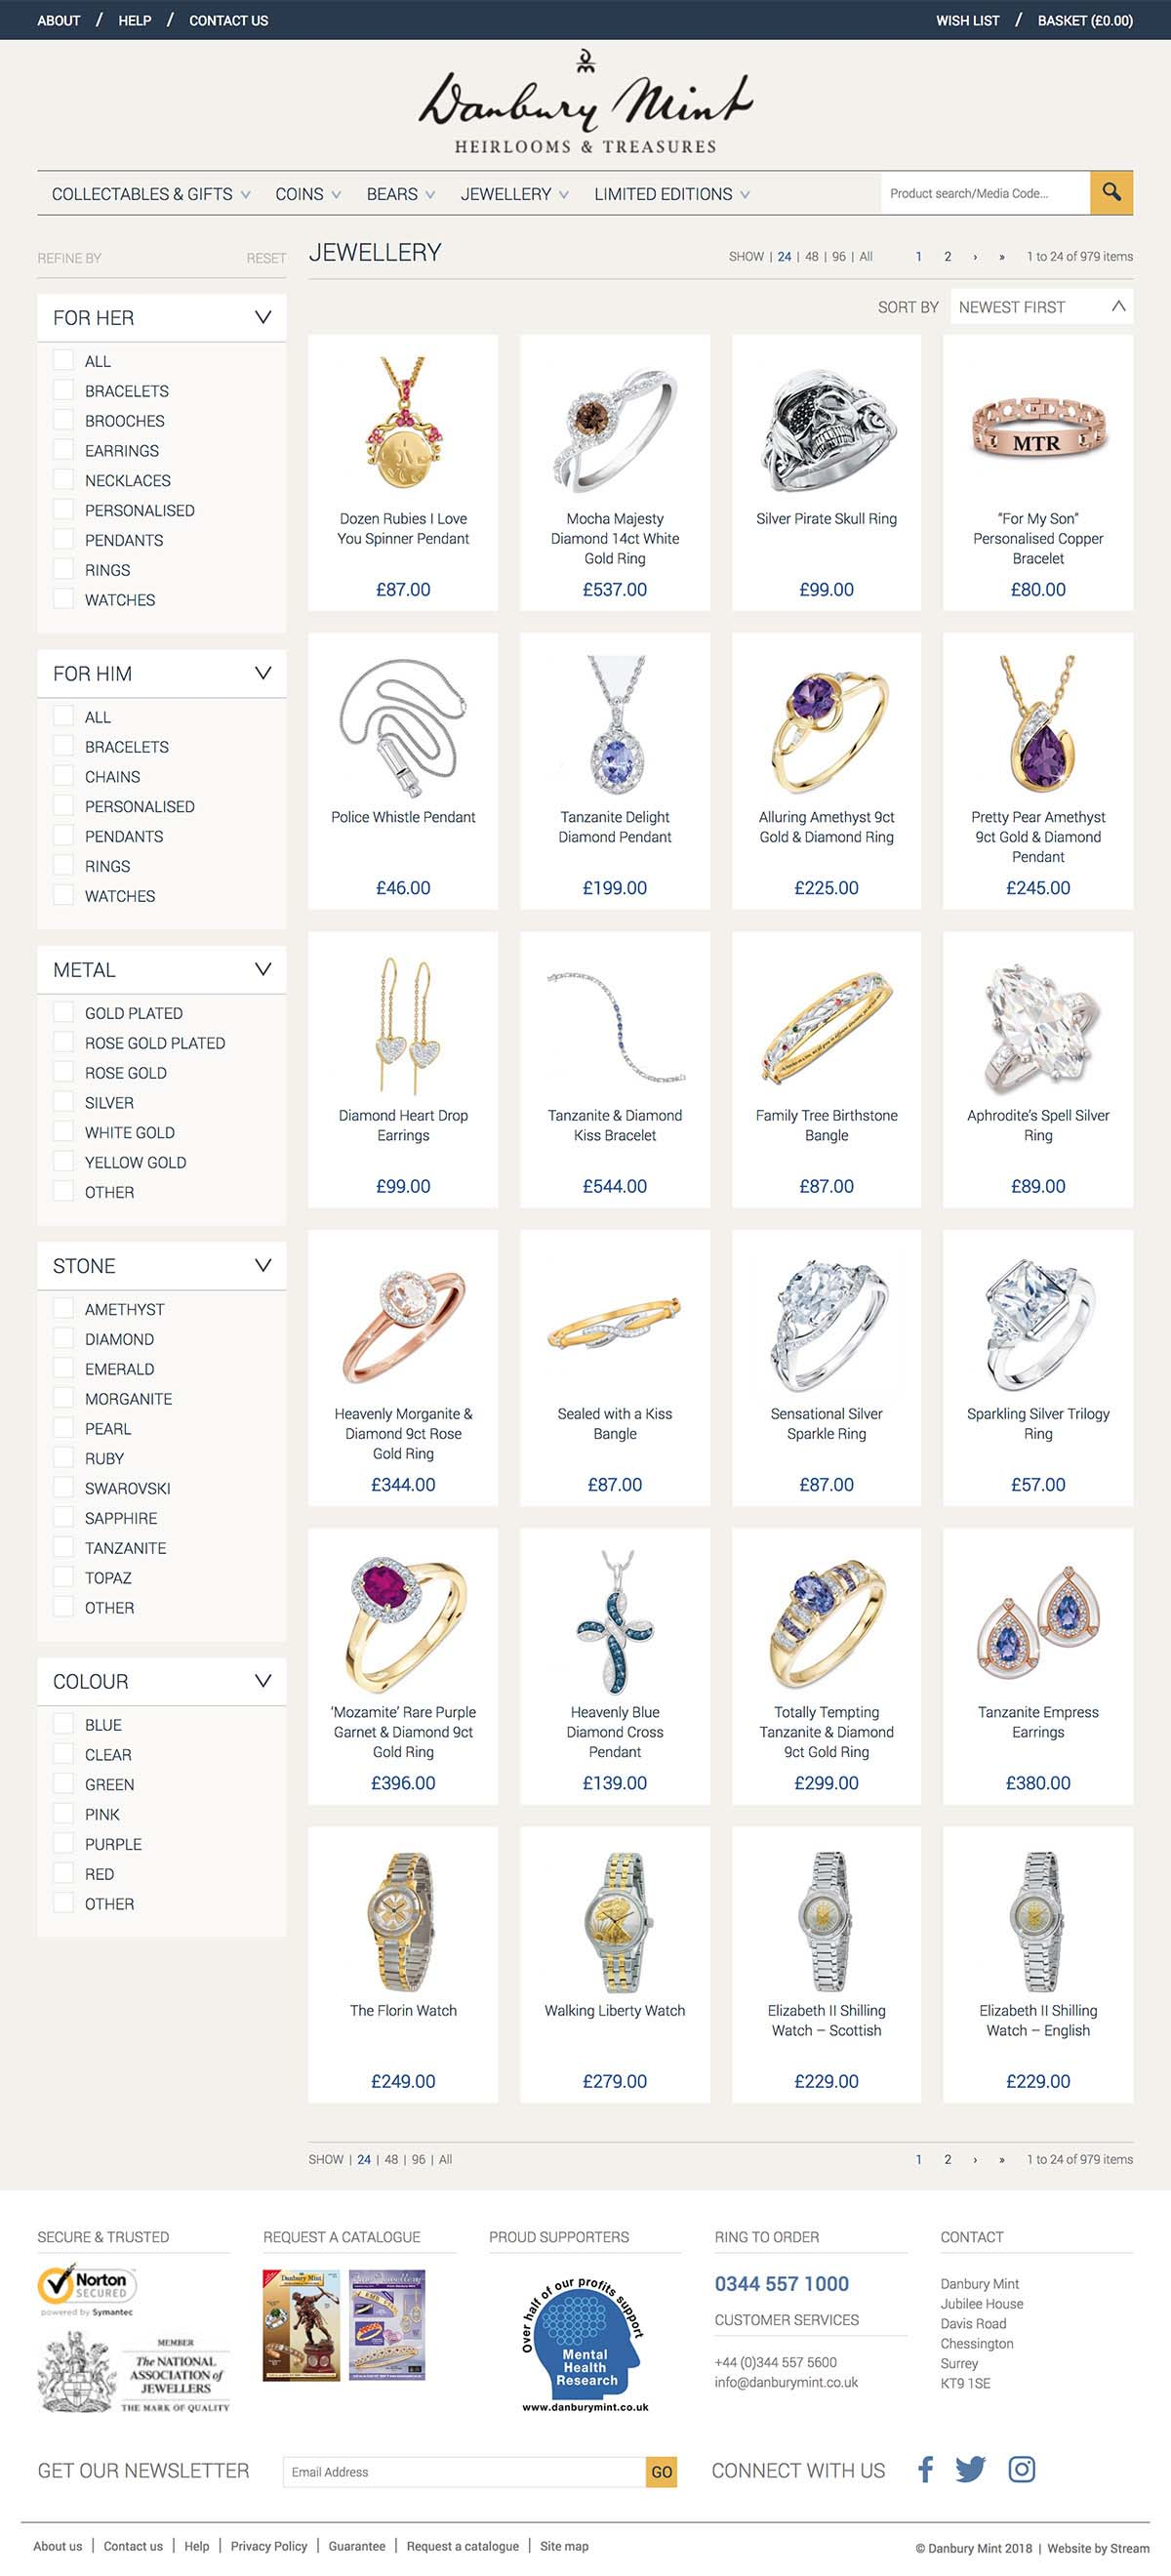 ecommerce jewellery page for Danbury Mint